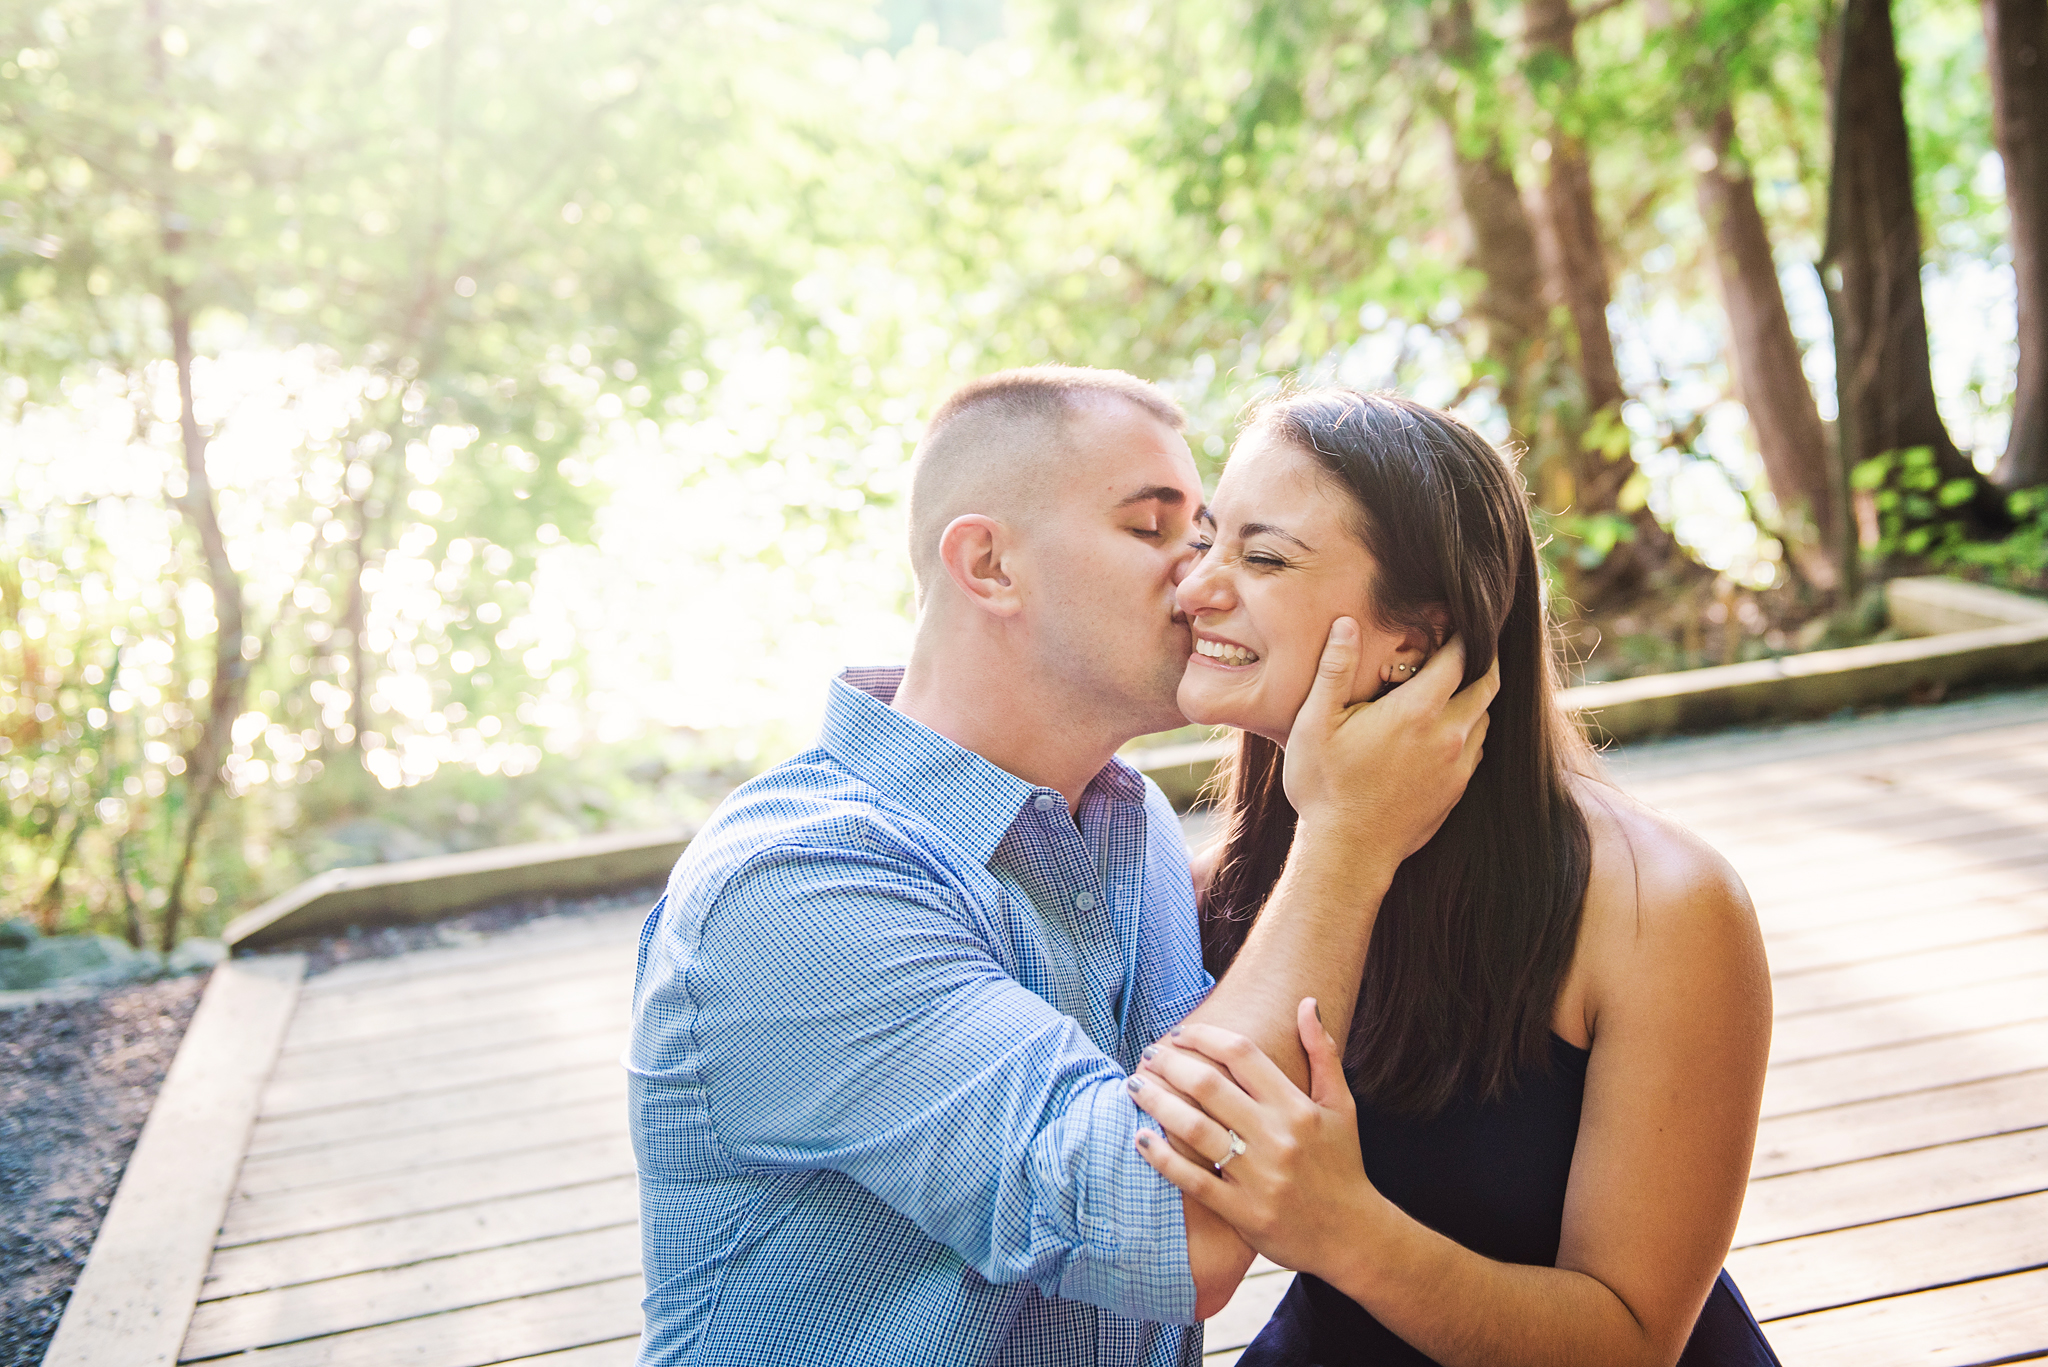 Green_Lakes_State_Park_Syracuse_Engagement_Session_JILL_STUDIO_Rochester_NY_Photographer_DSC_0930.jpg